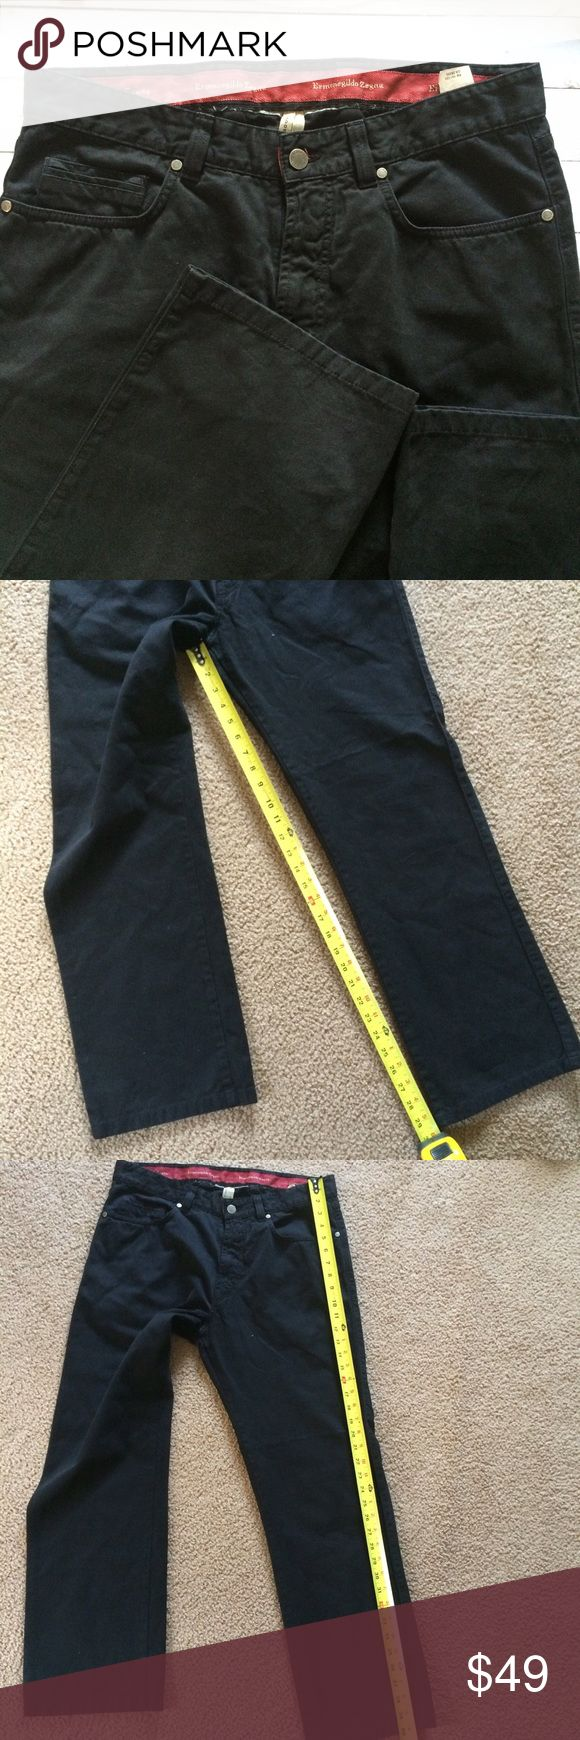 Ermenegildo Zegna Black Denim Men's Pants Size 34 Previously used but in great Condition! Might be missing a label inside Ermenegildo Zegna Pants